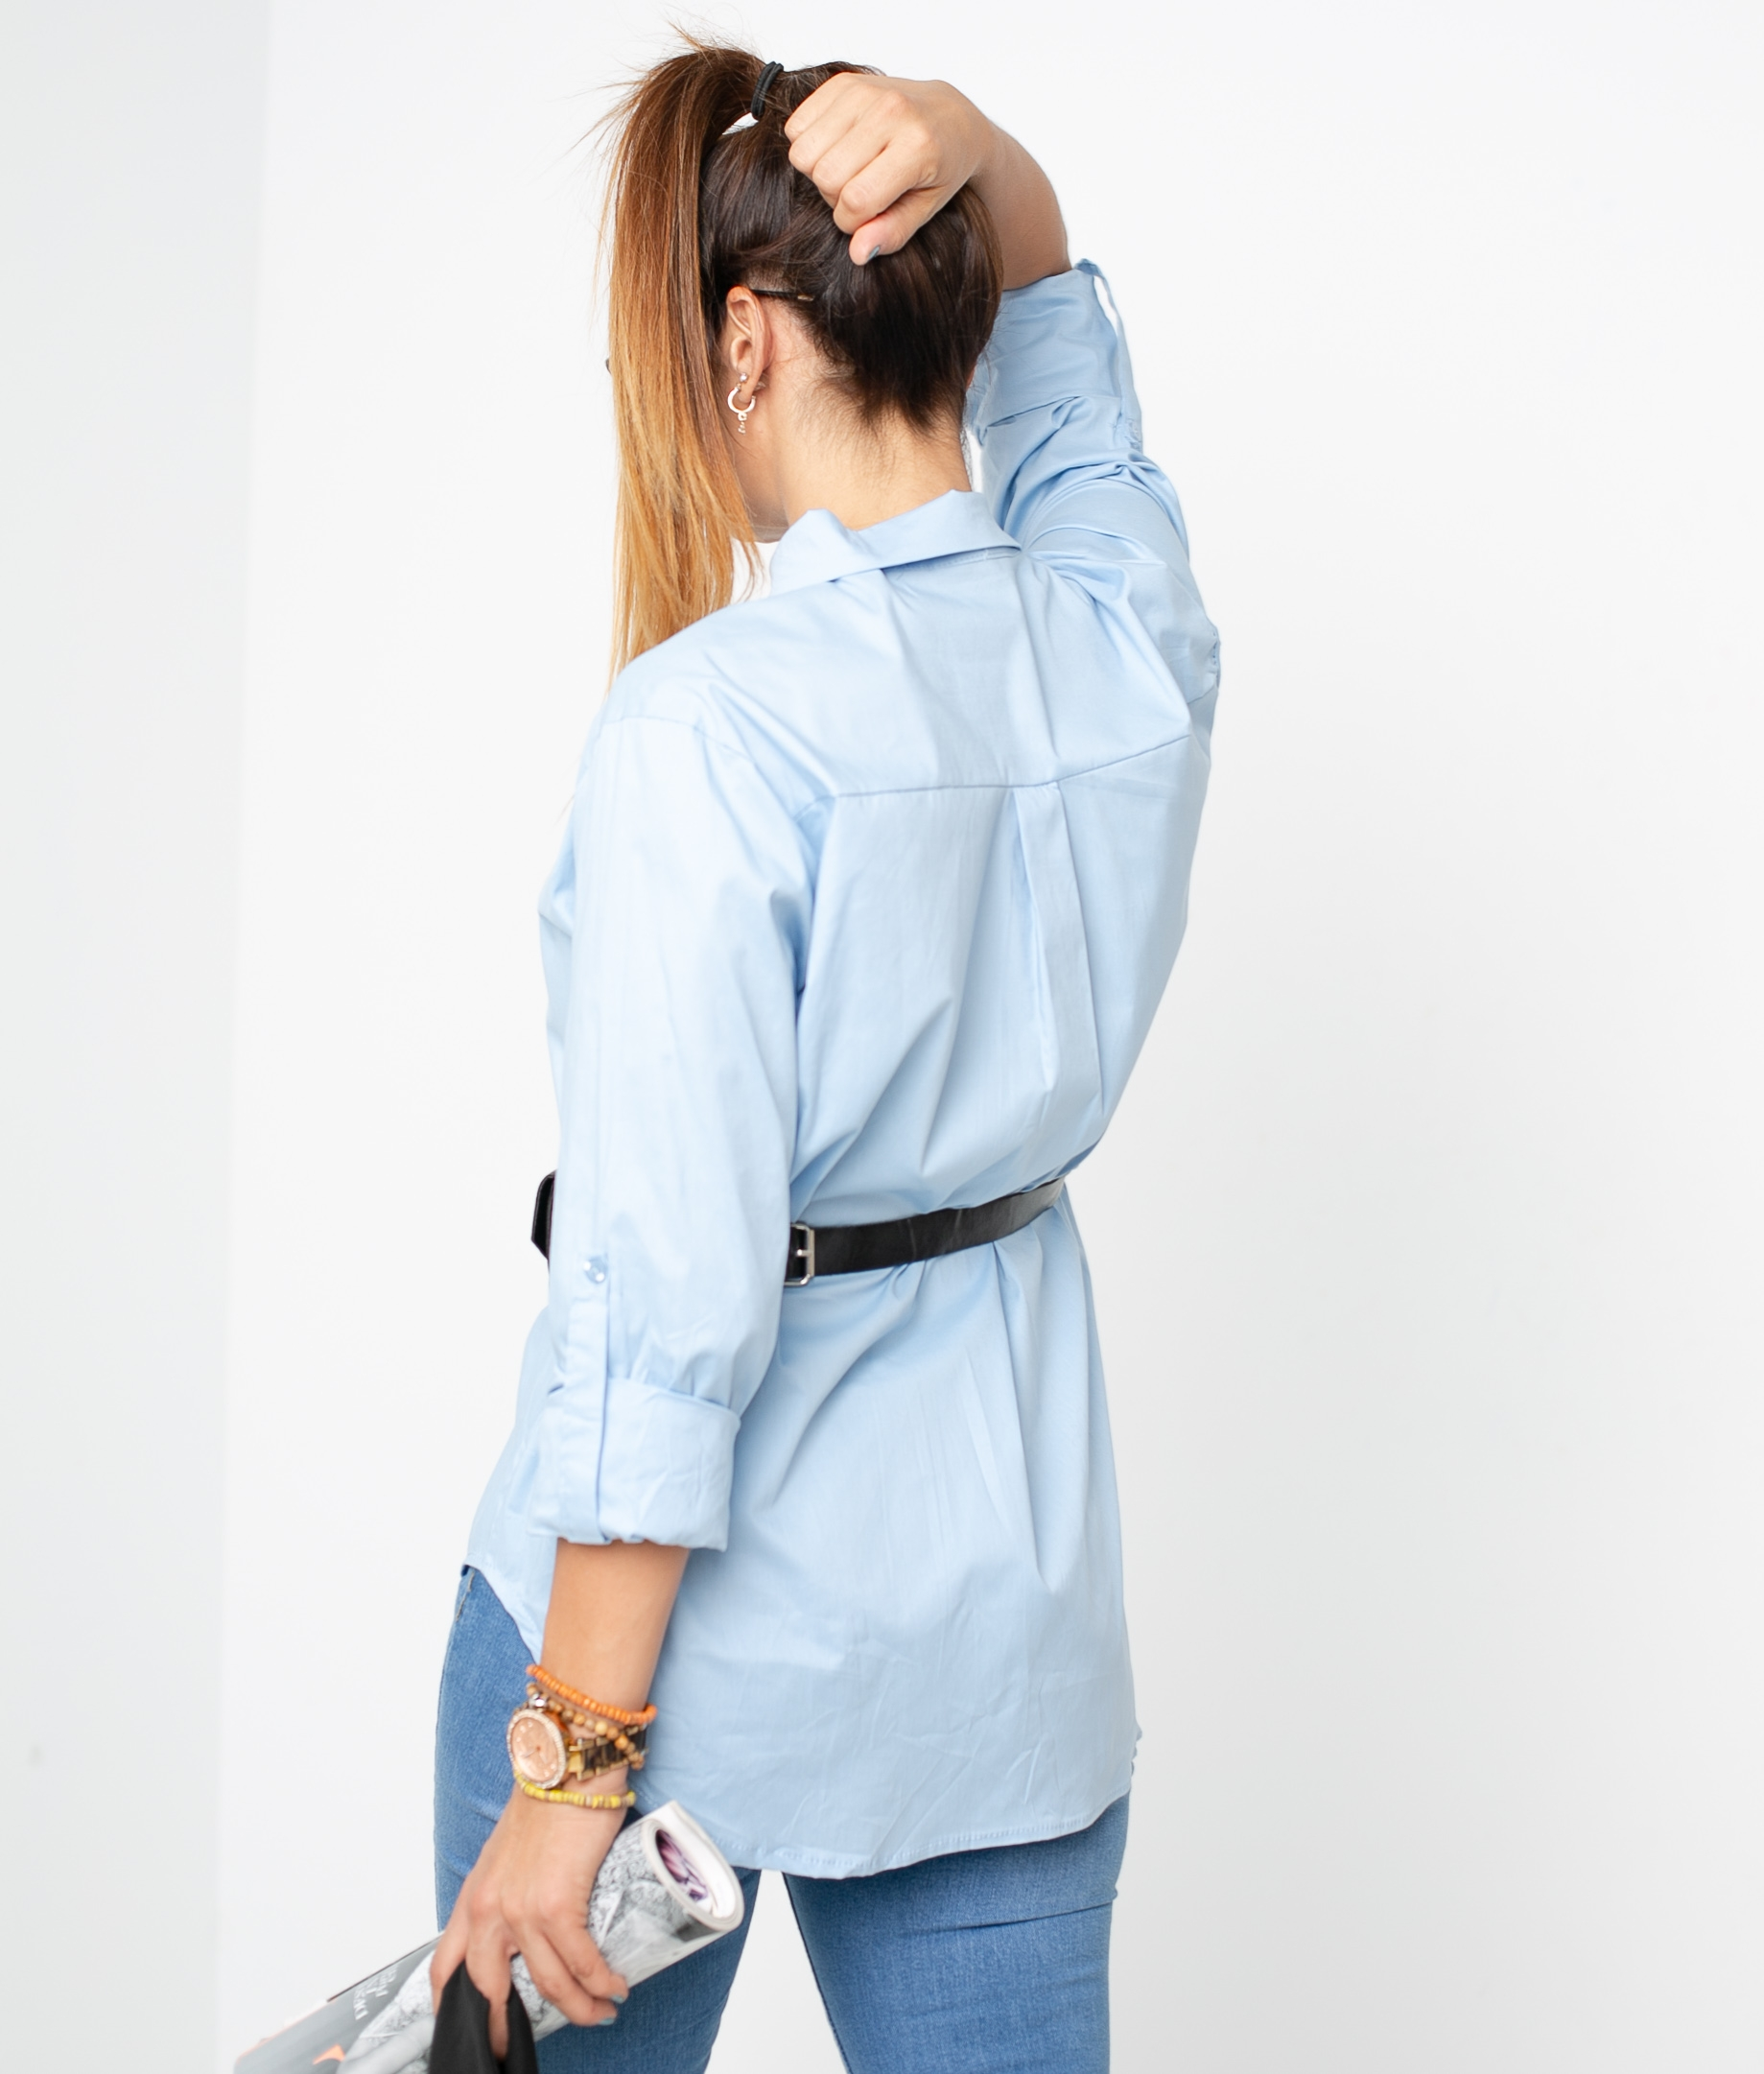 JIARA SHIRT - BLUE